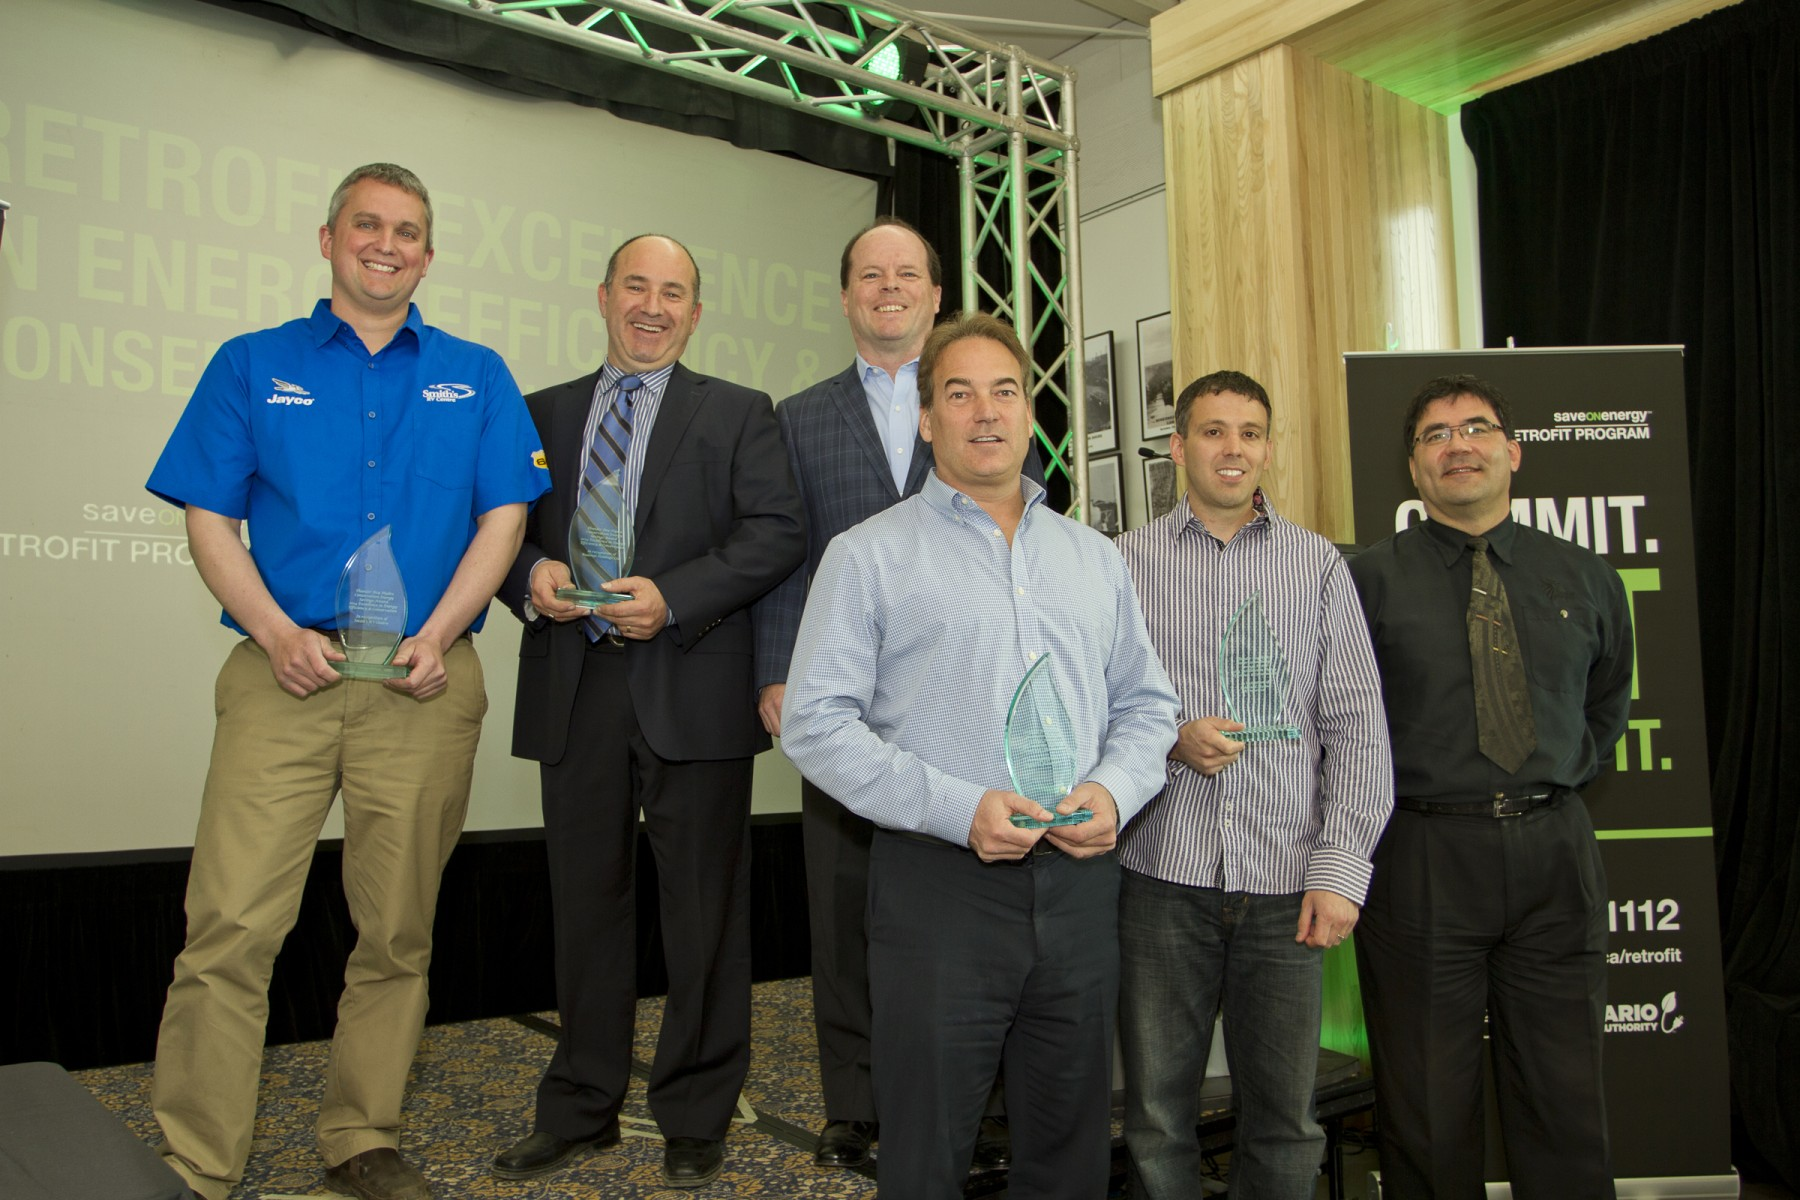 Saving Energy and Money: Local Businesses Get RETROFIT and Get Awarded